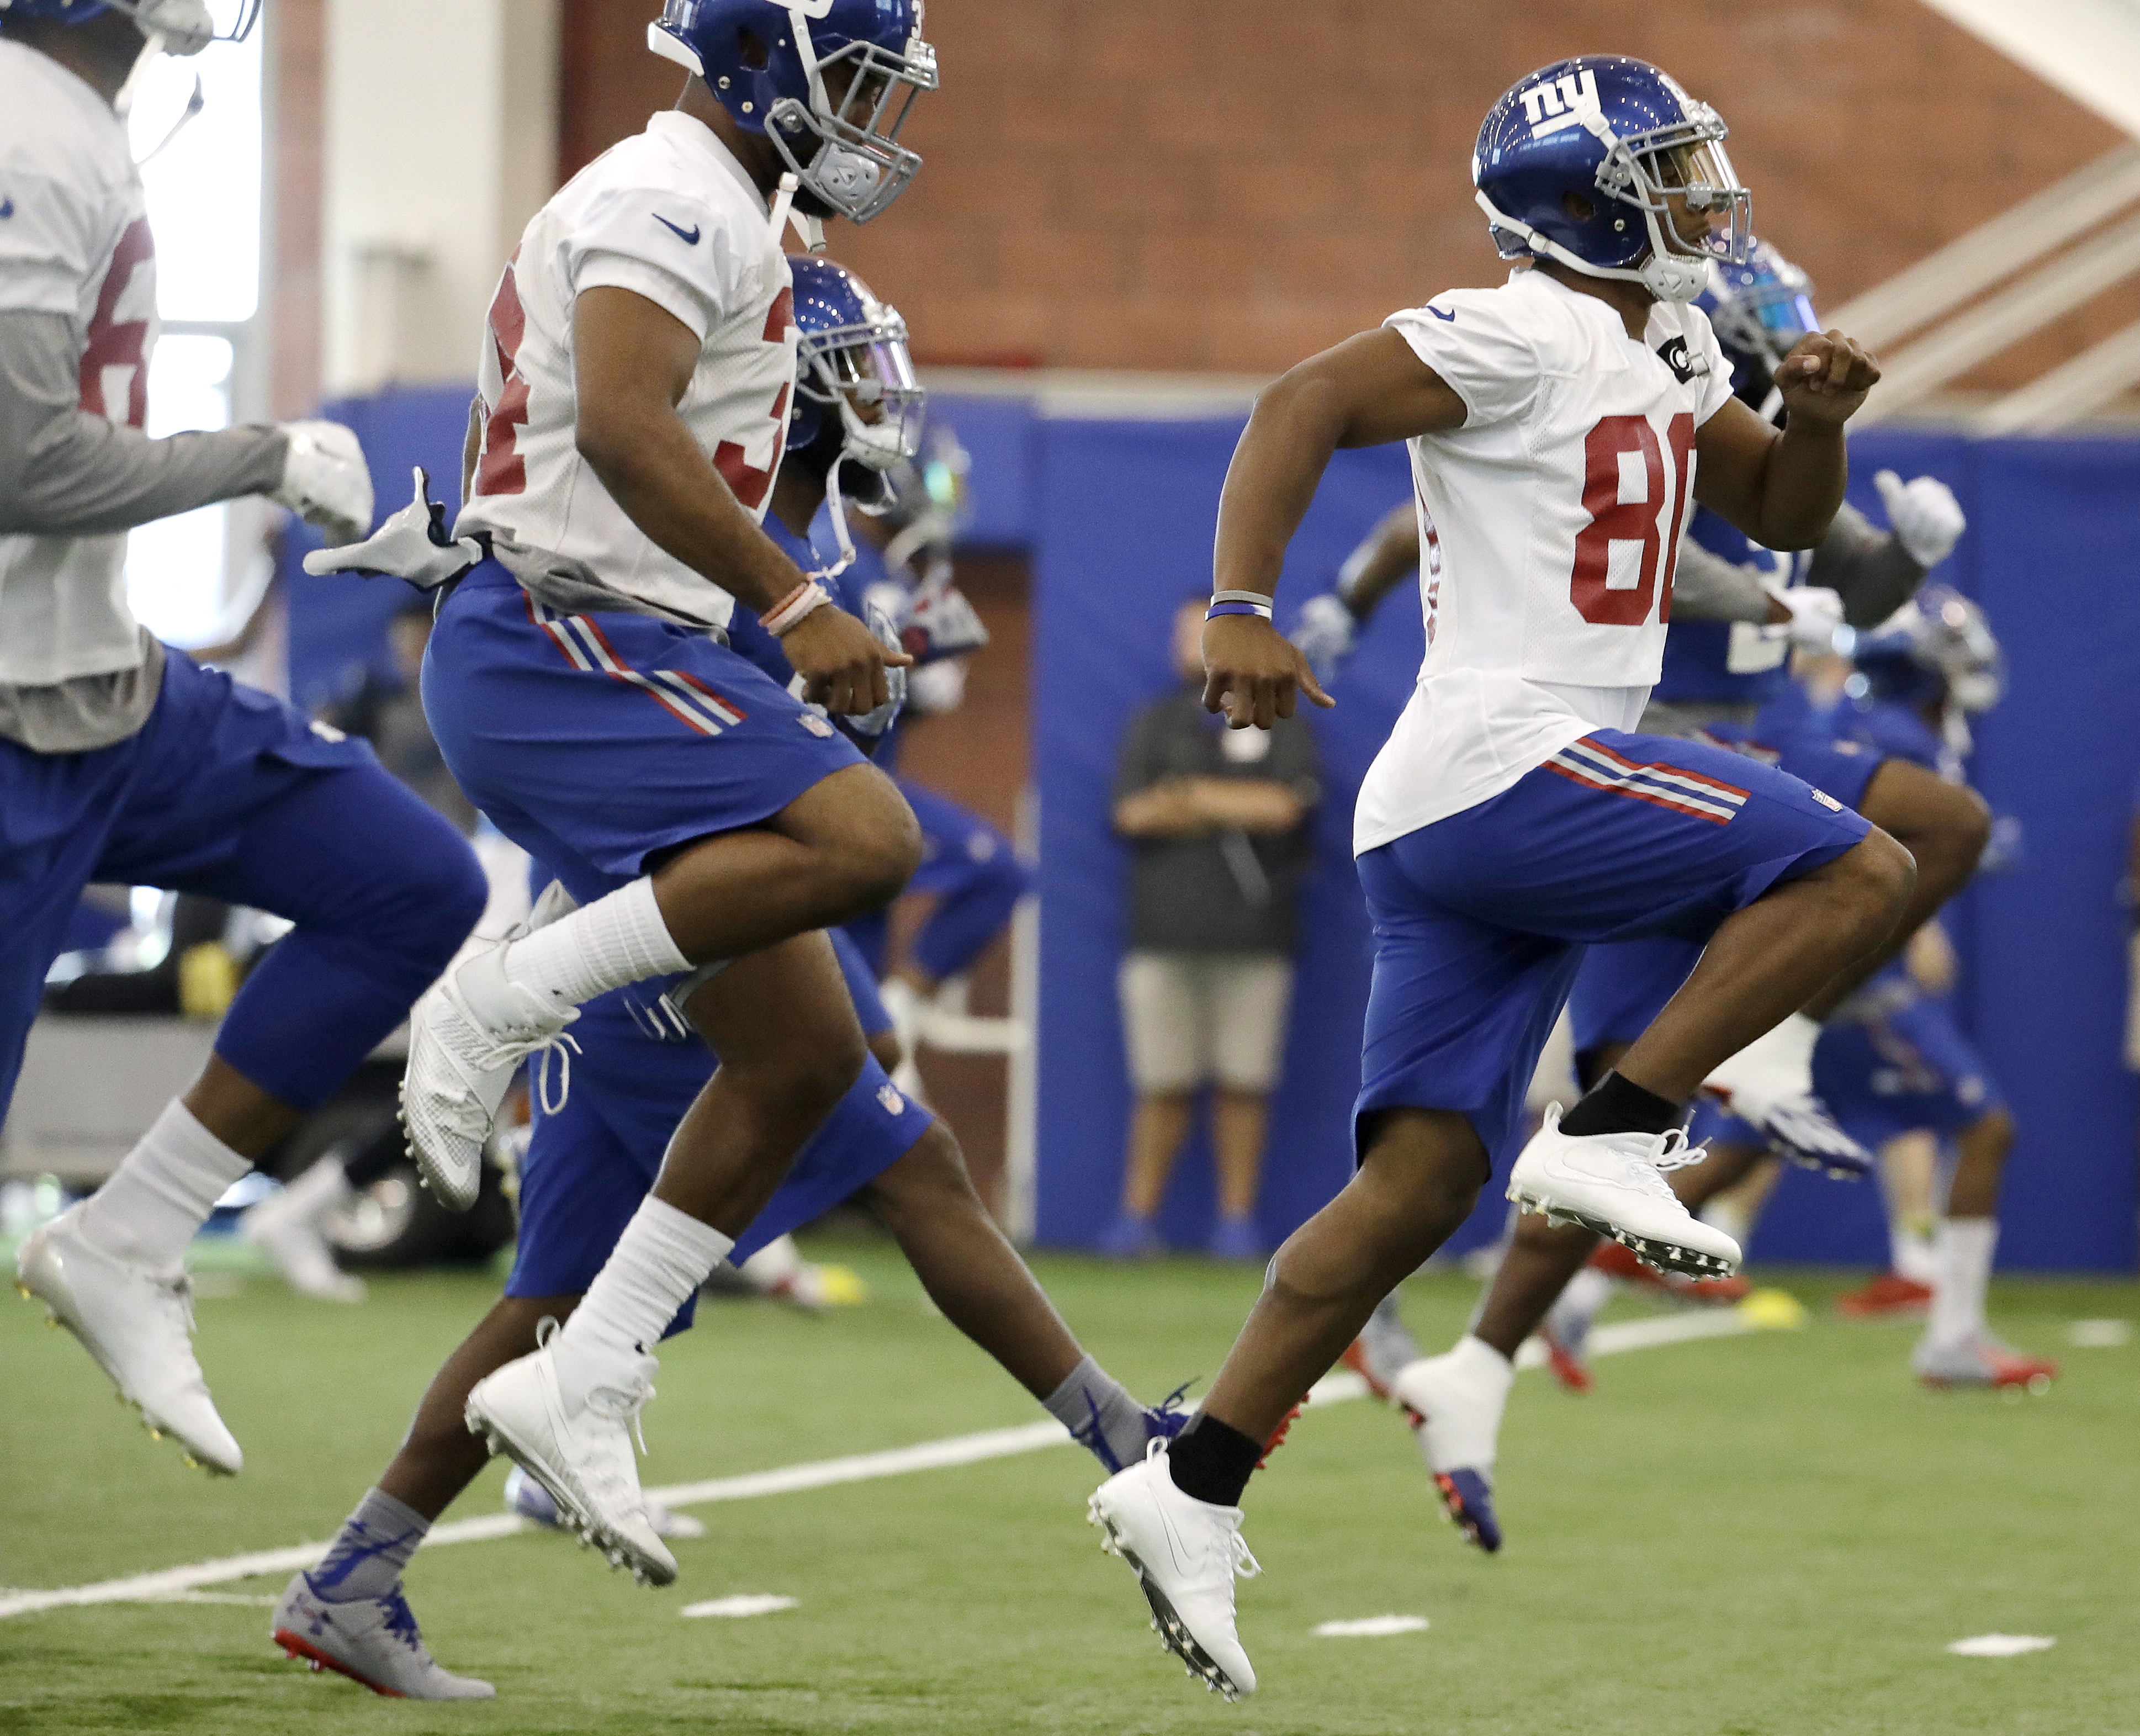 FILE - In this July 29, 2016, file photo, New York Giants wide receiver Victor Cruz, right, runs a drill during NFL football training camp in East Rutherford, N.J. An NFL game Saturday, Aug. 27, 2016, includes Cruz playing for the first time since tearing